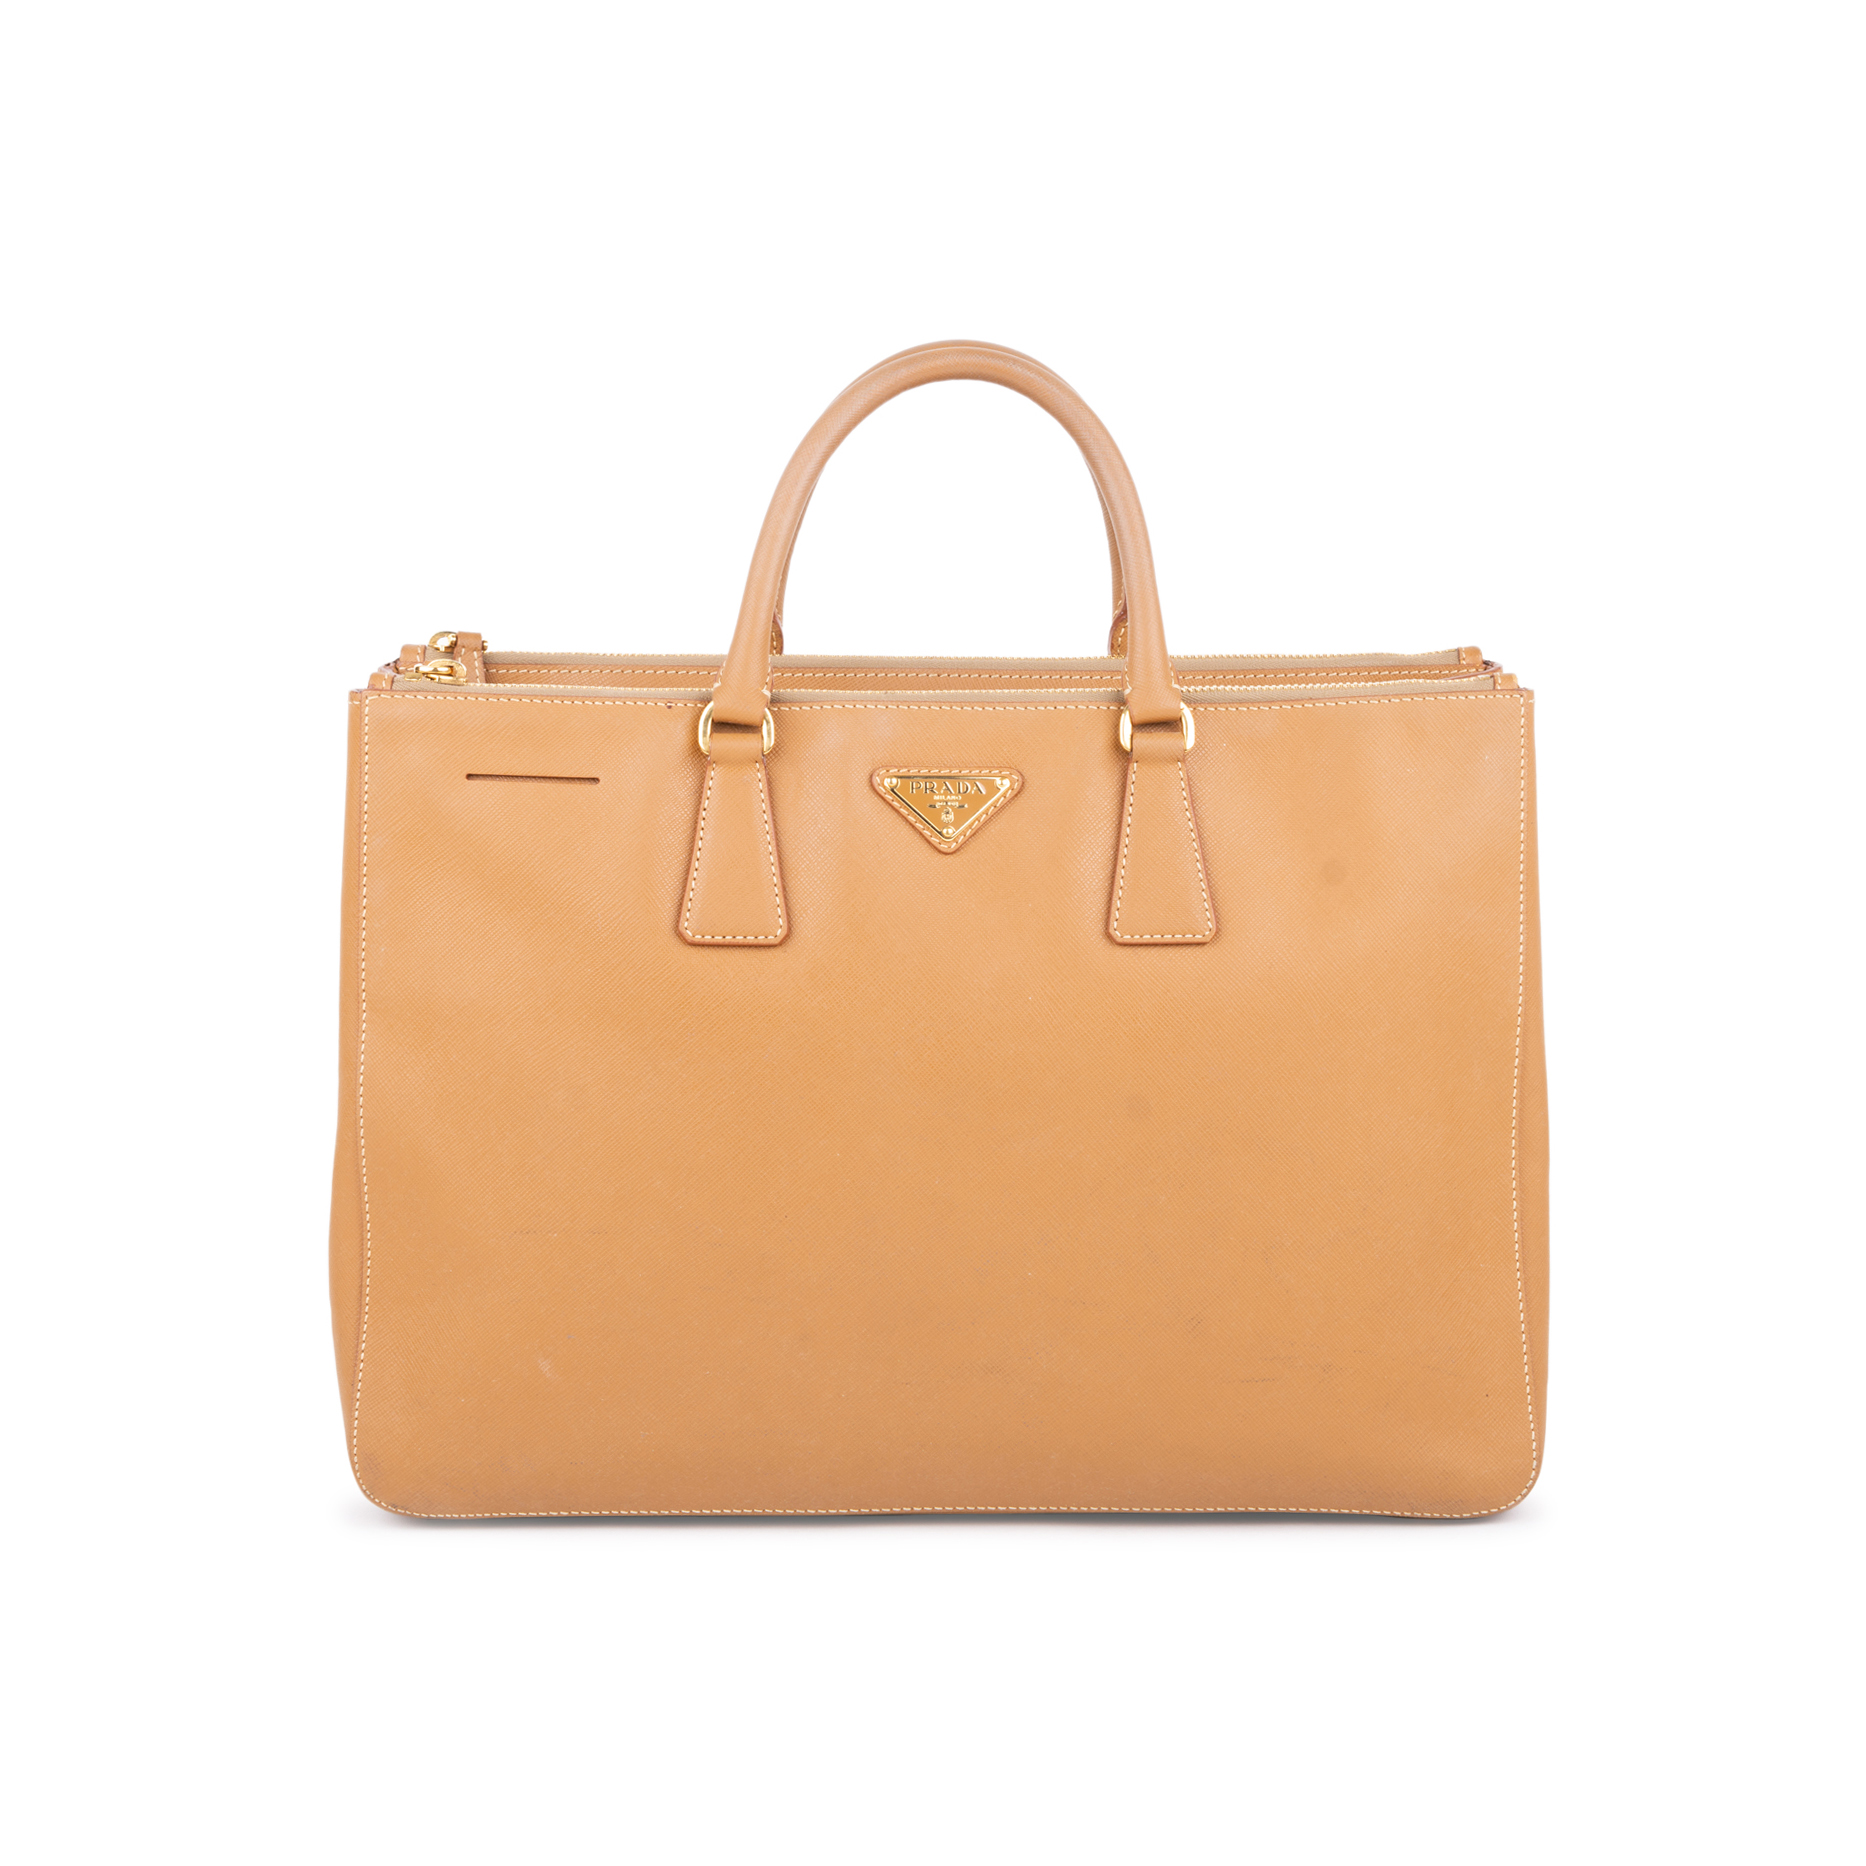 26e35c182f90 Authentic Second Hand Prada Saffiano Lux Double Zip Tote (PSS-585-00013) |  THE FIFTH COLLECTION